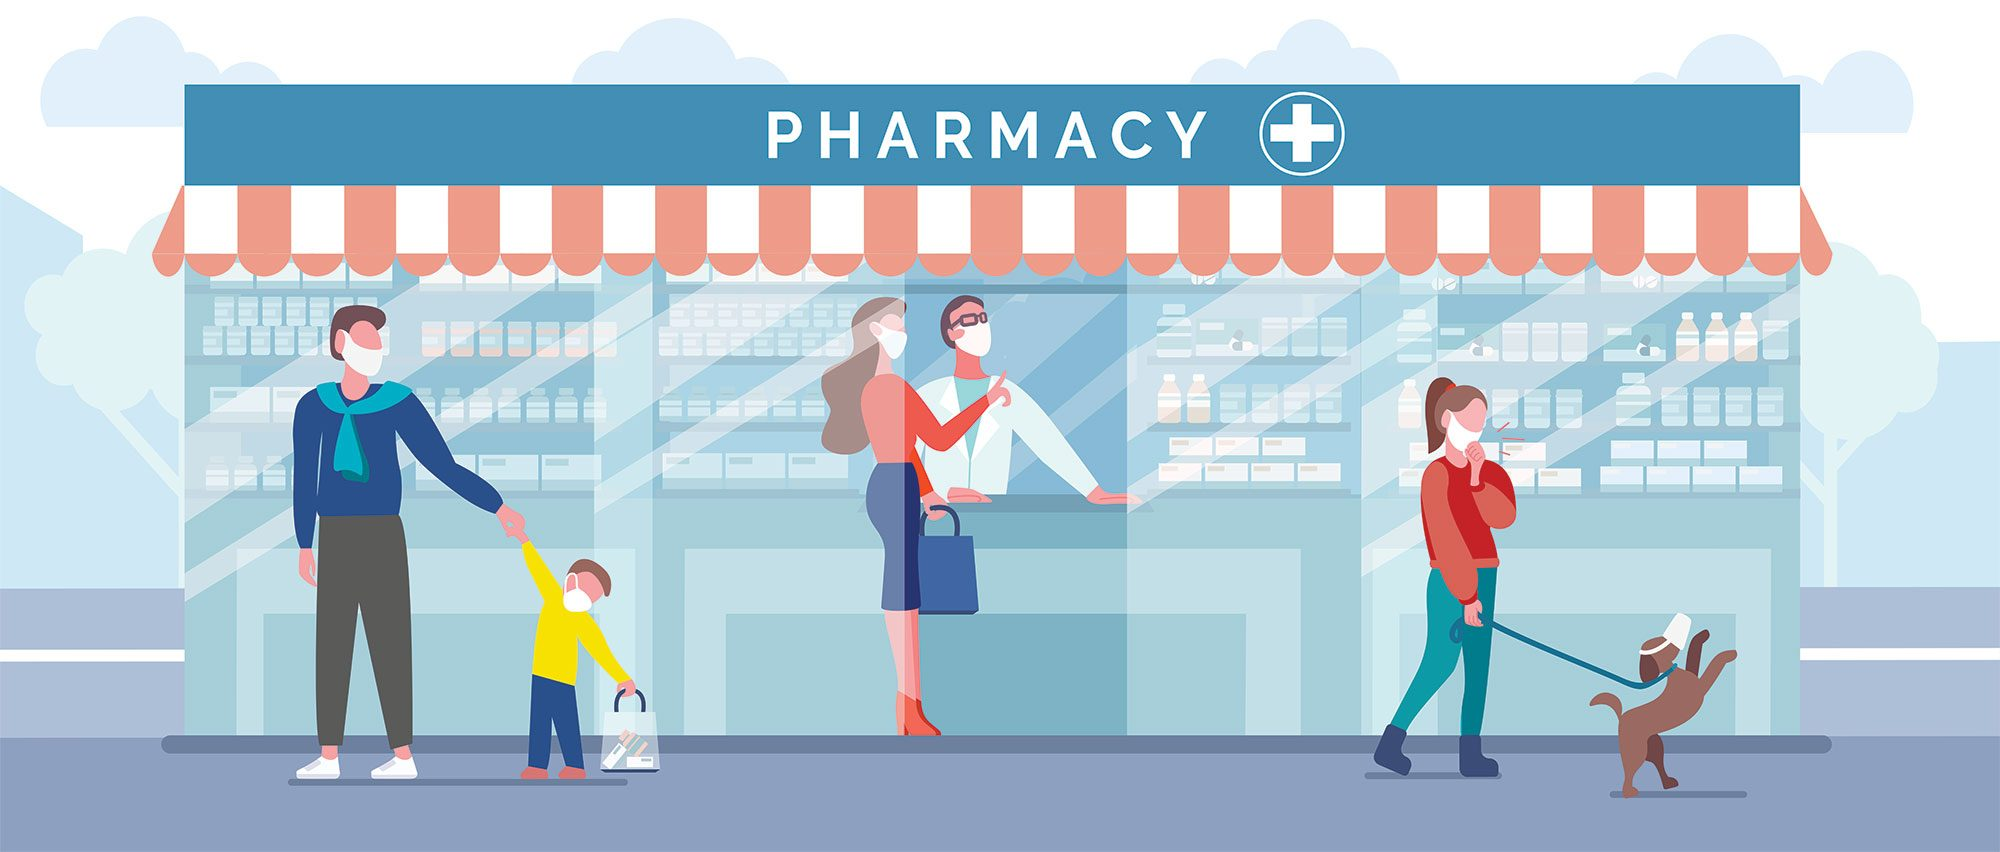 Drugstore or pharmacy. Pharmacist, woman, man, child and girl with dog in protective masks to prevent the spread of disease. Buying medicaments during epidemic, quarantine, virus. Vector illustration